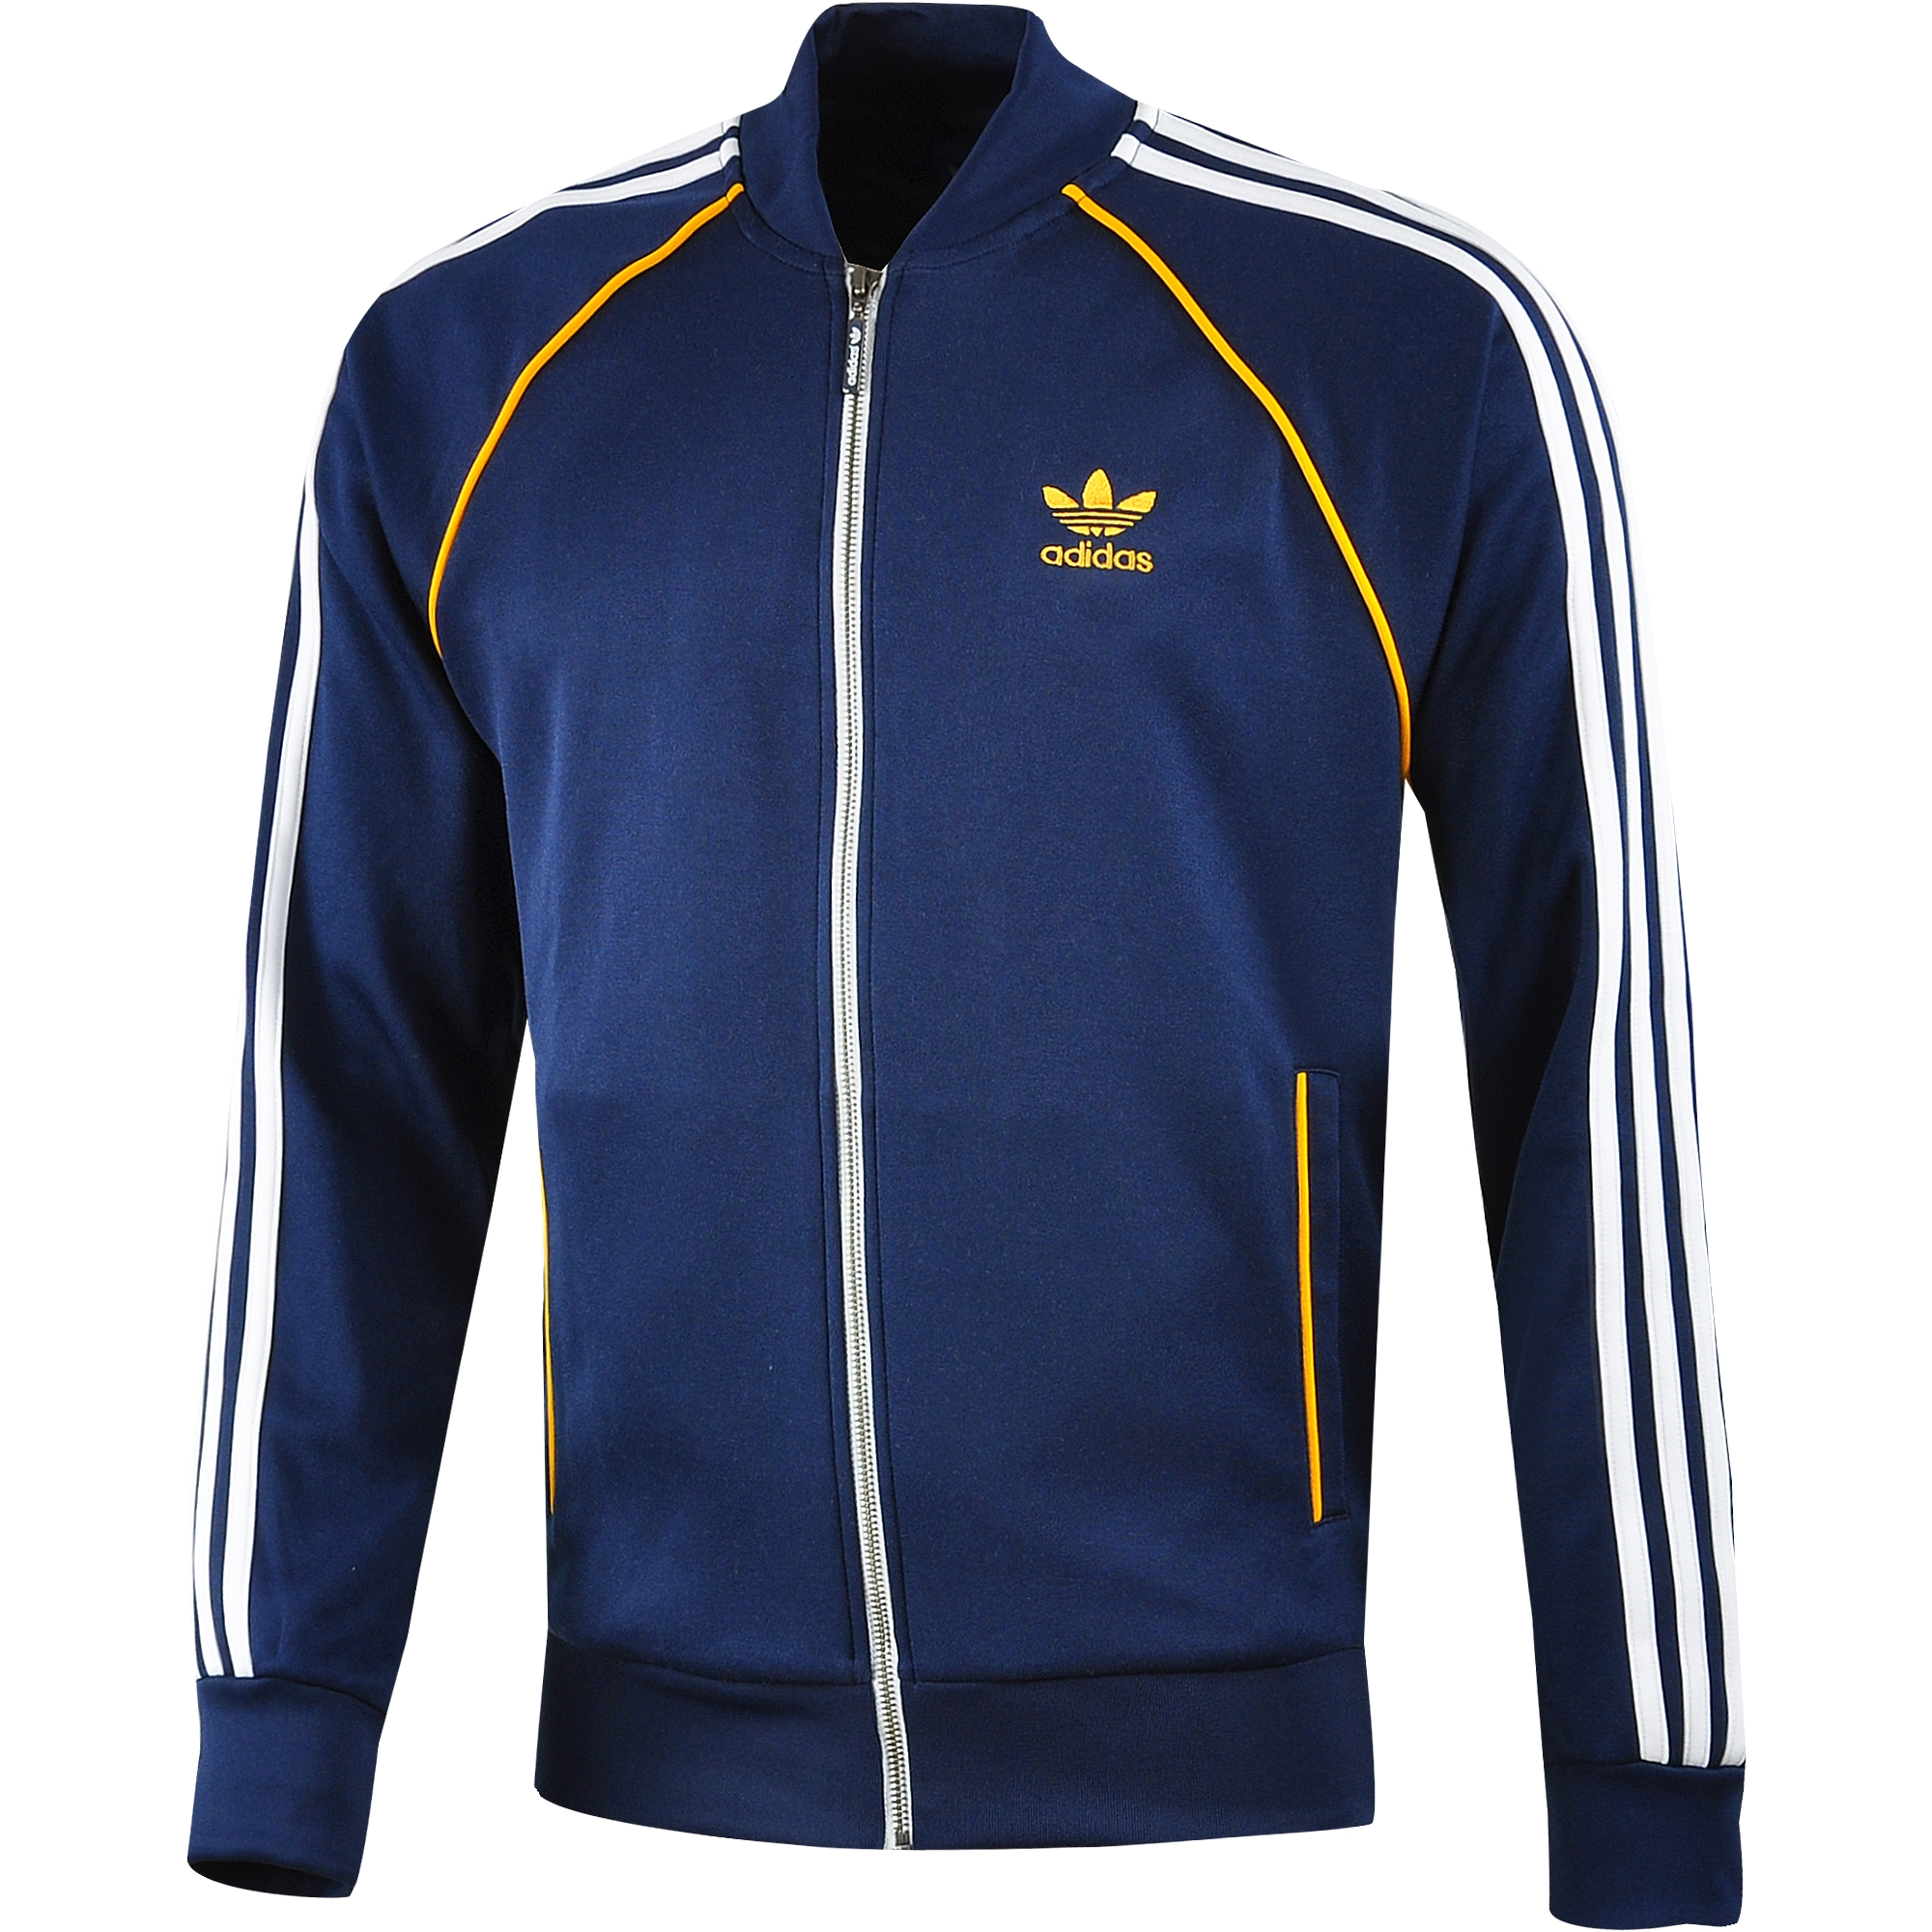 adidas superstar track top erkek ceket s19174. Black Bedroom Furniture Sets. Home Design Ideas